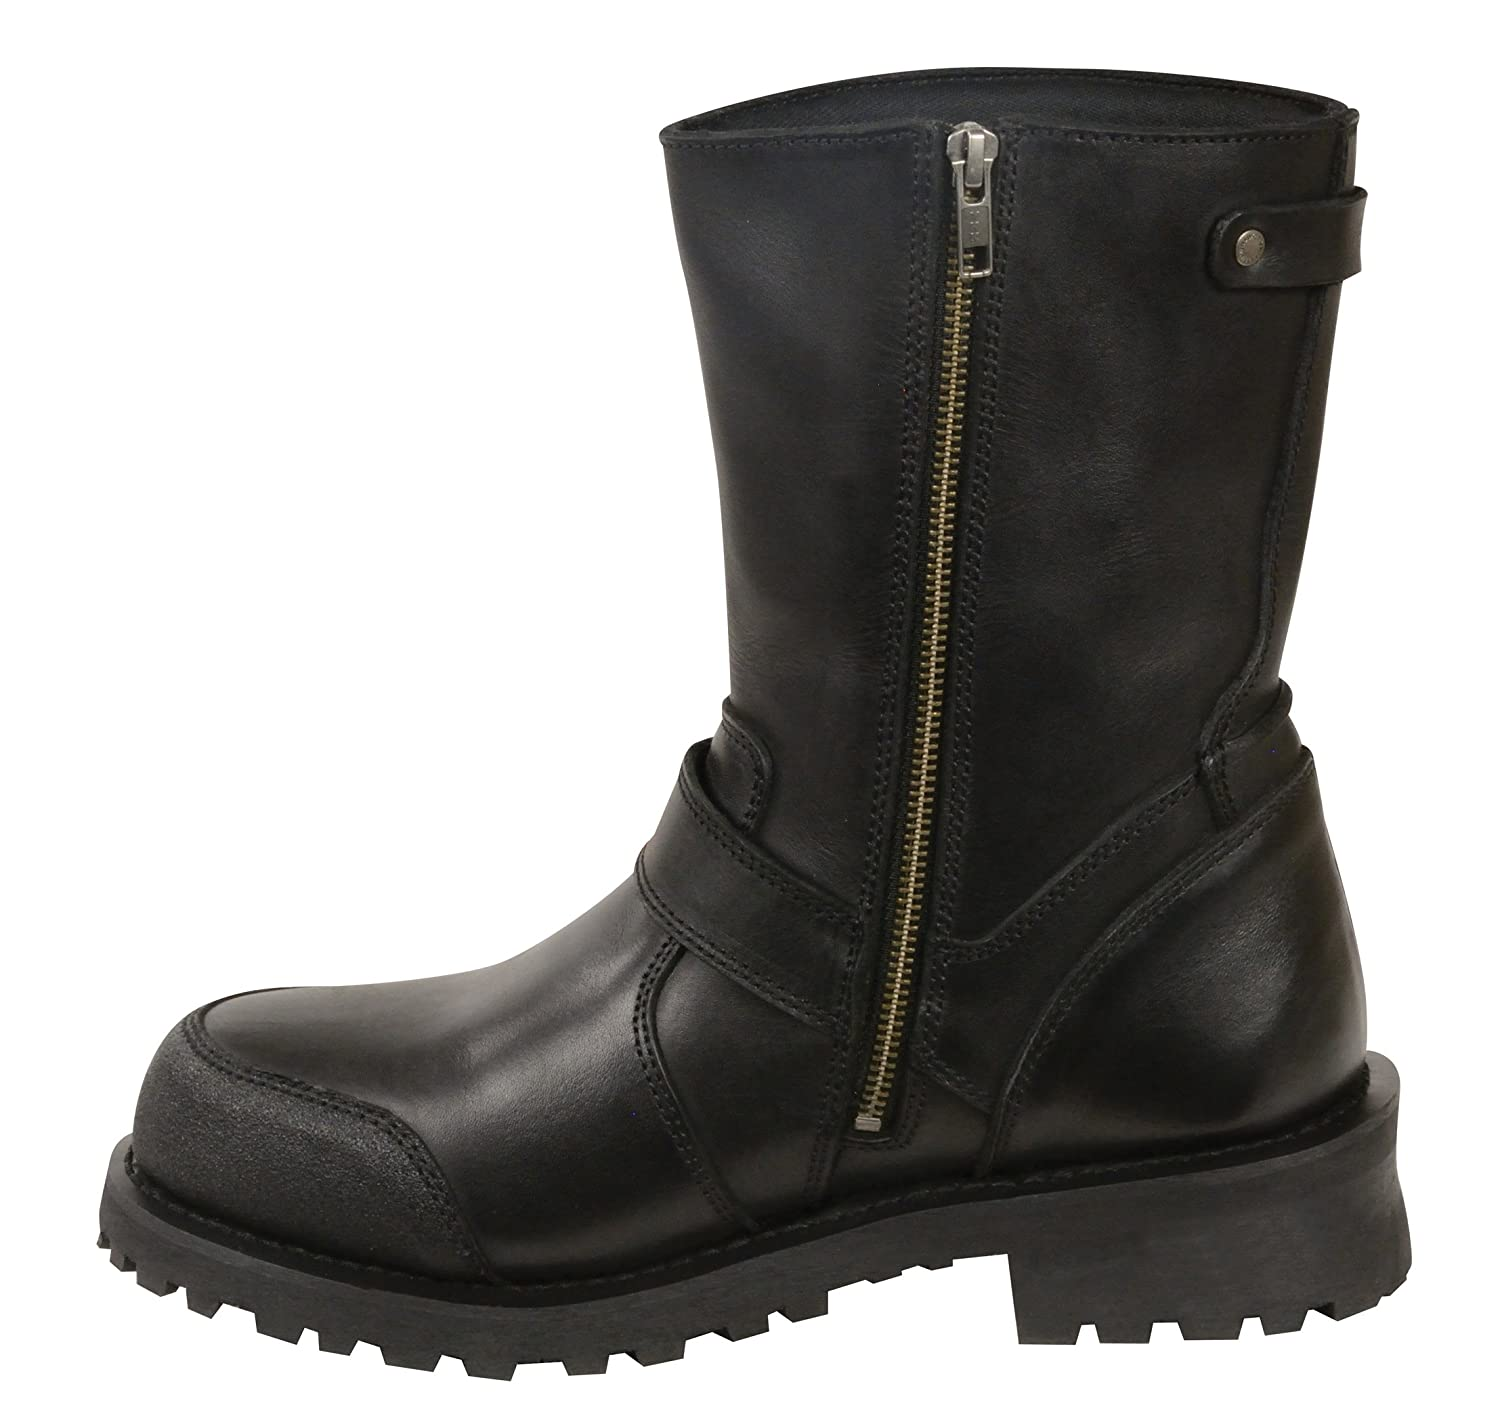 Black, Size 10.5 Milwaukee Leather Mens Classic Boots with Buckle Detail